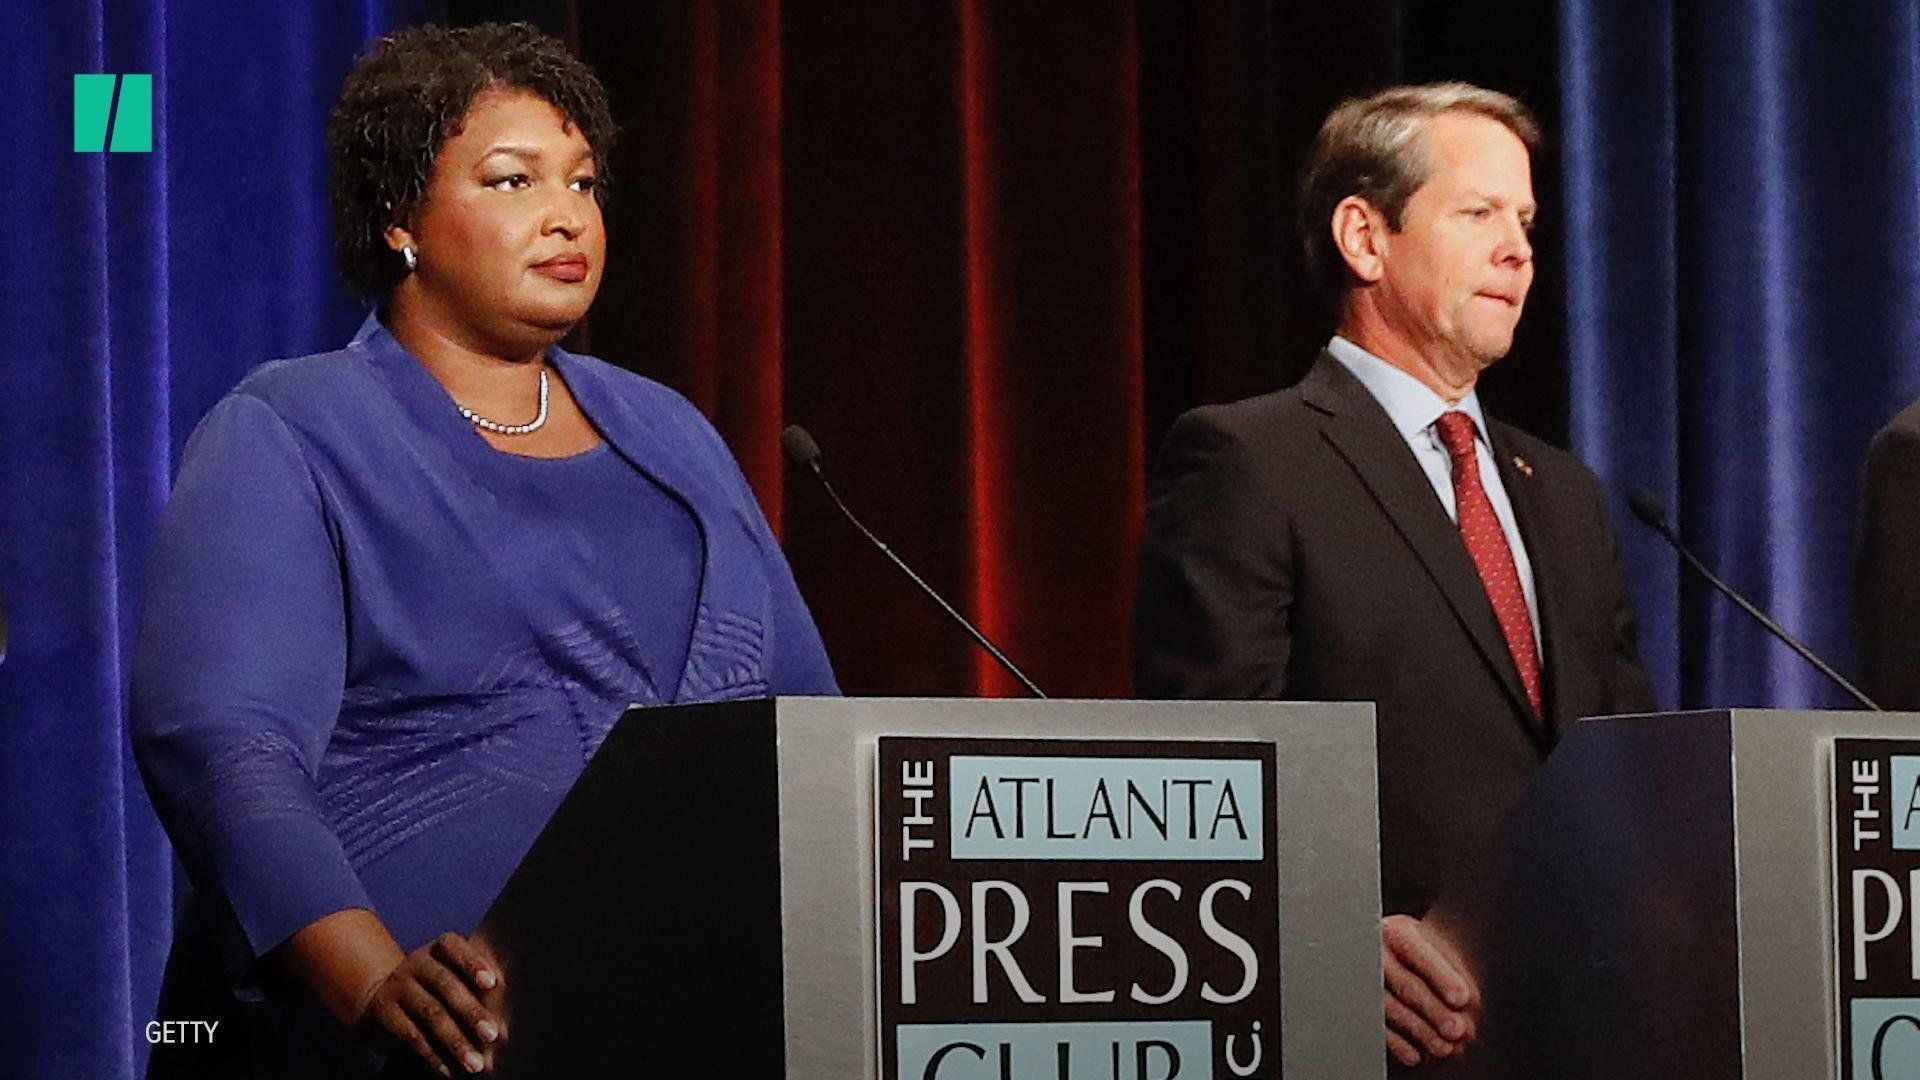 Georgia's Brian Kemp Announces Election Hacking Charge Against Democrats